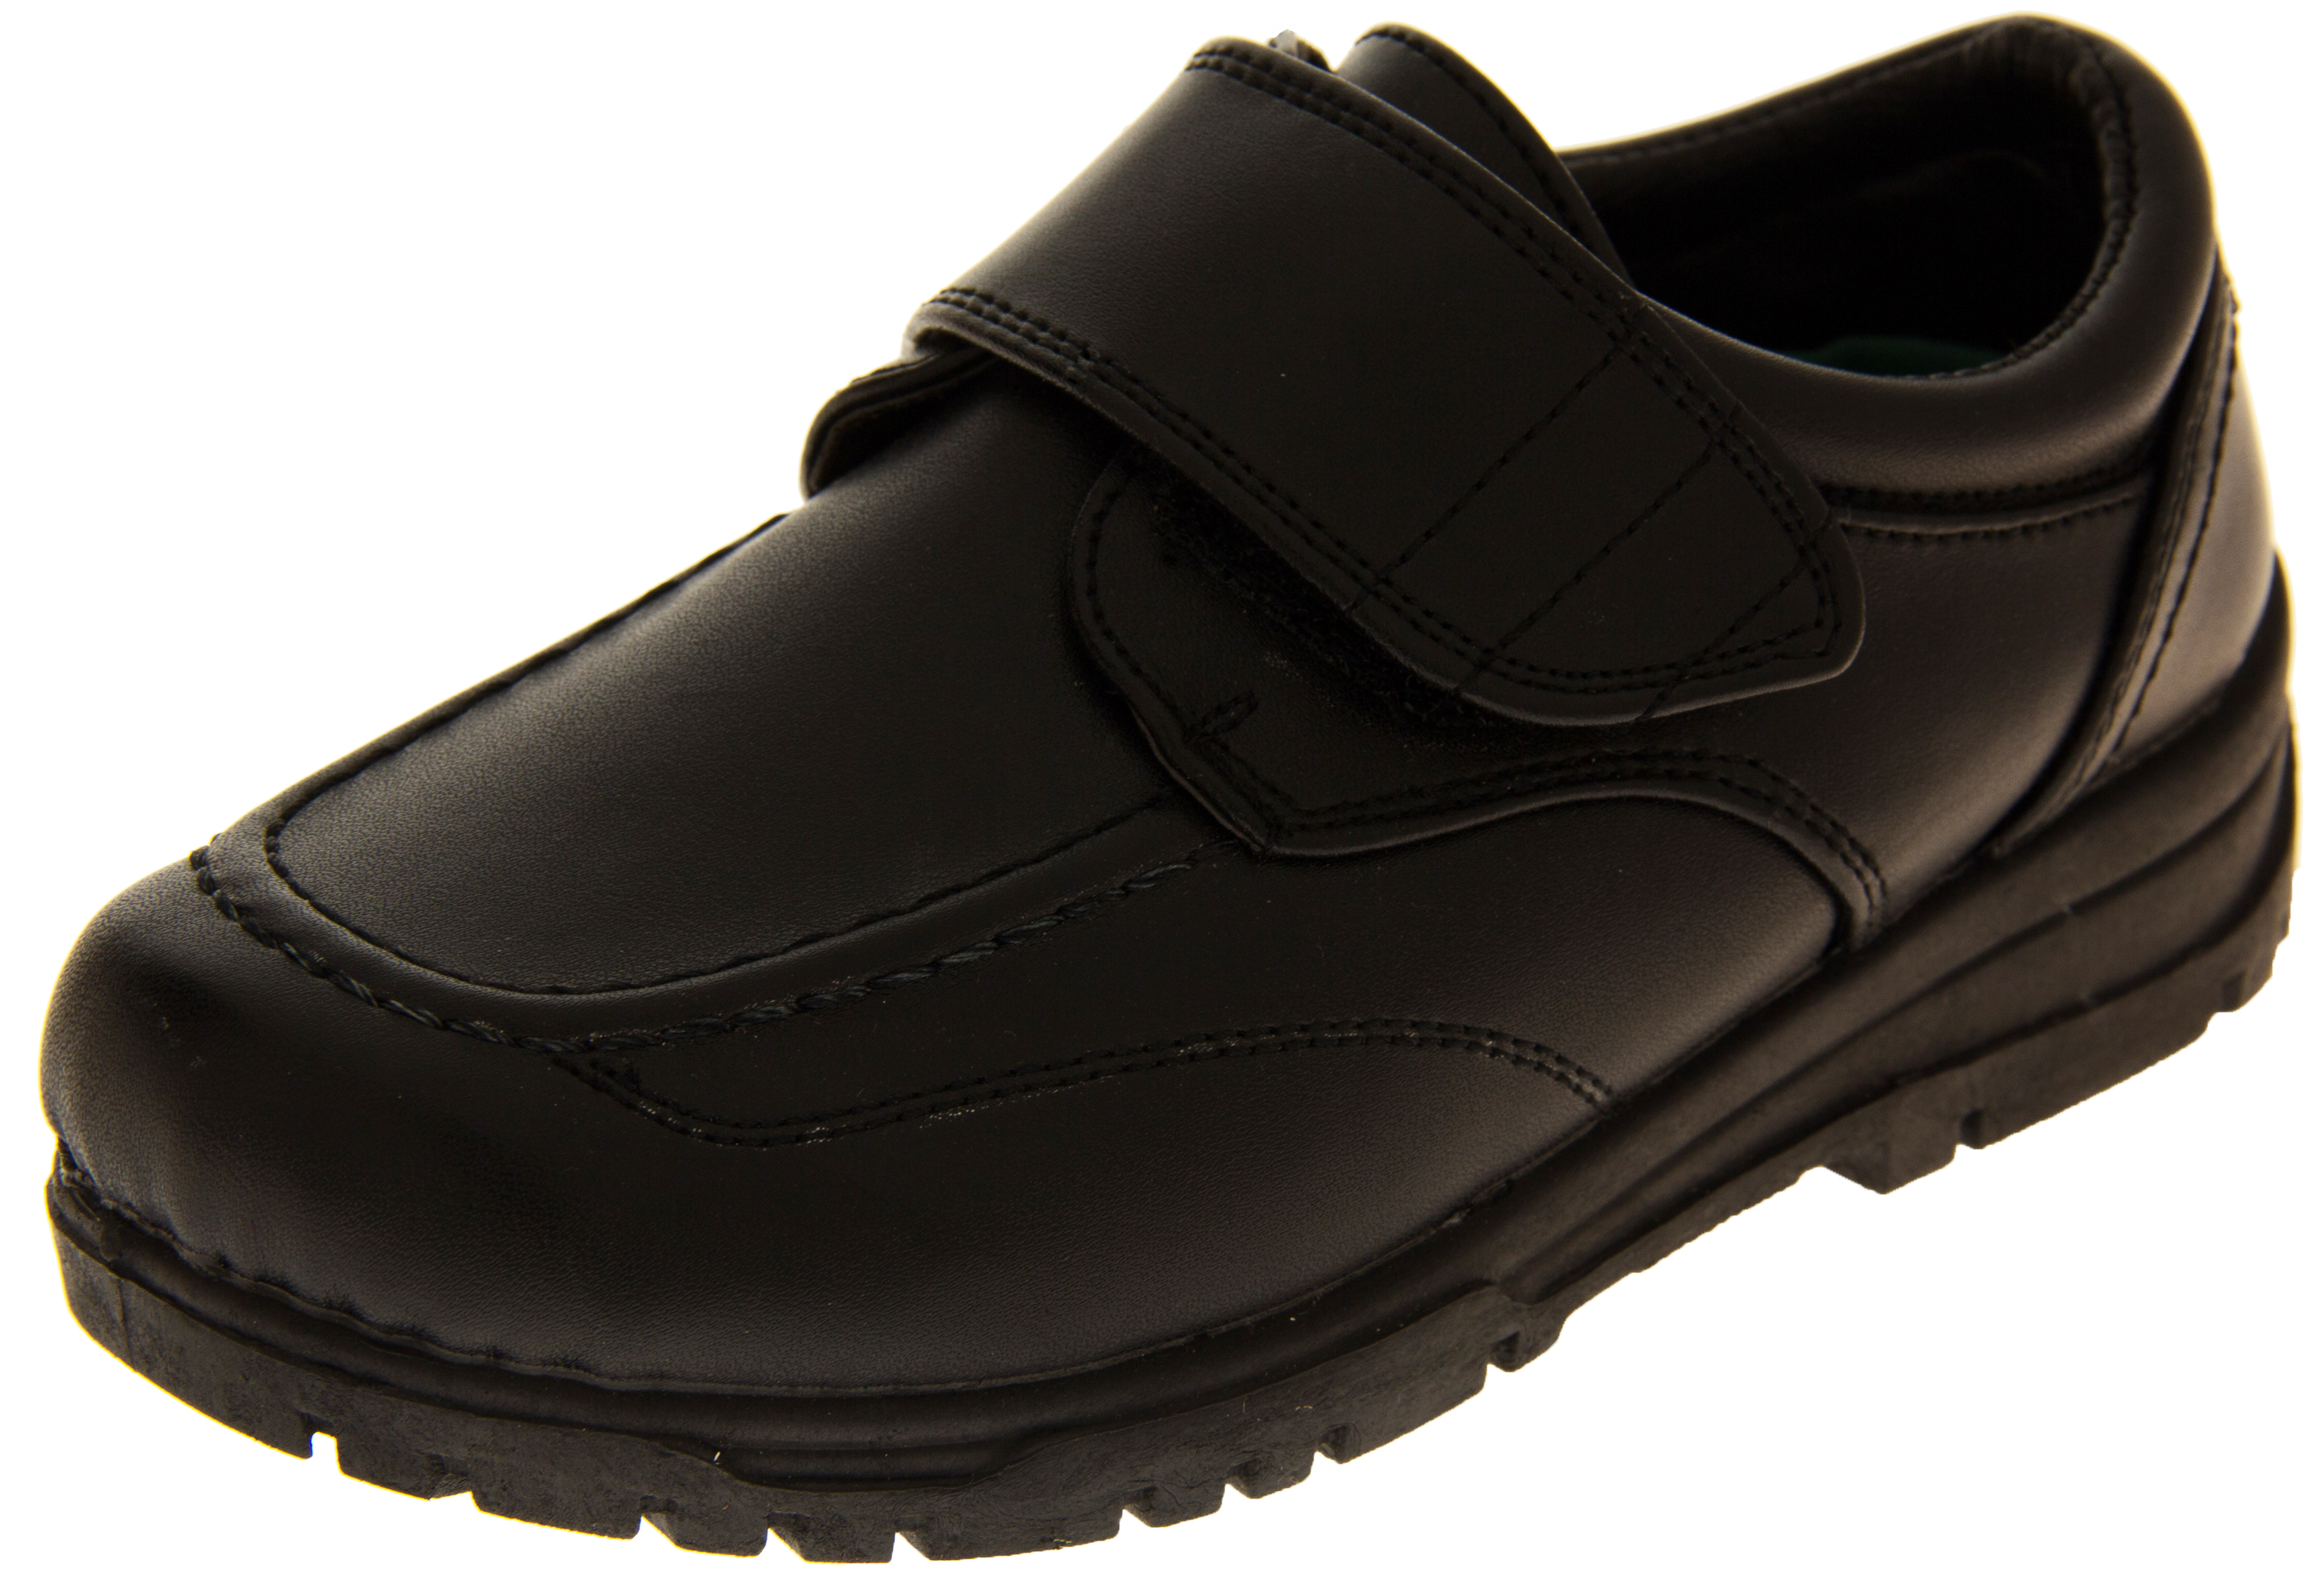 Target Black School Shoes